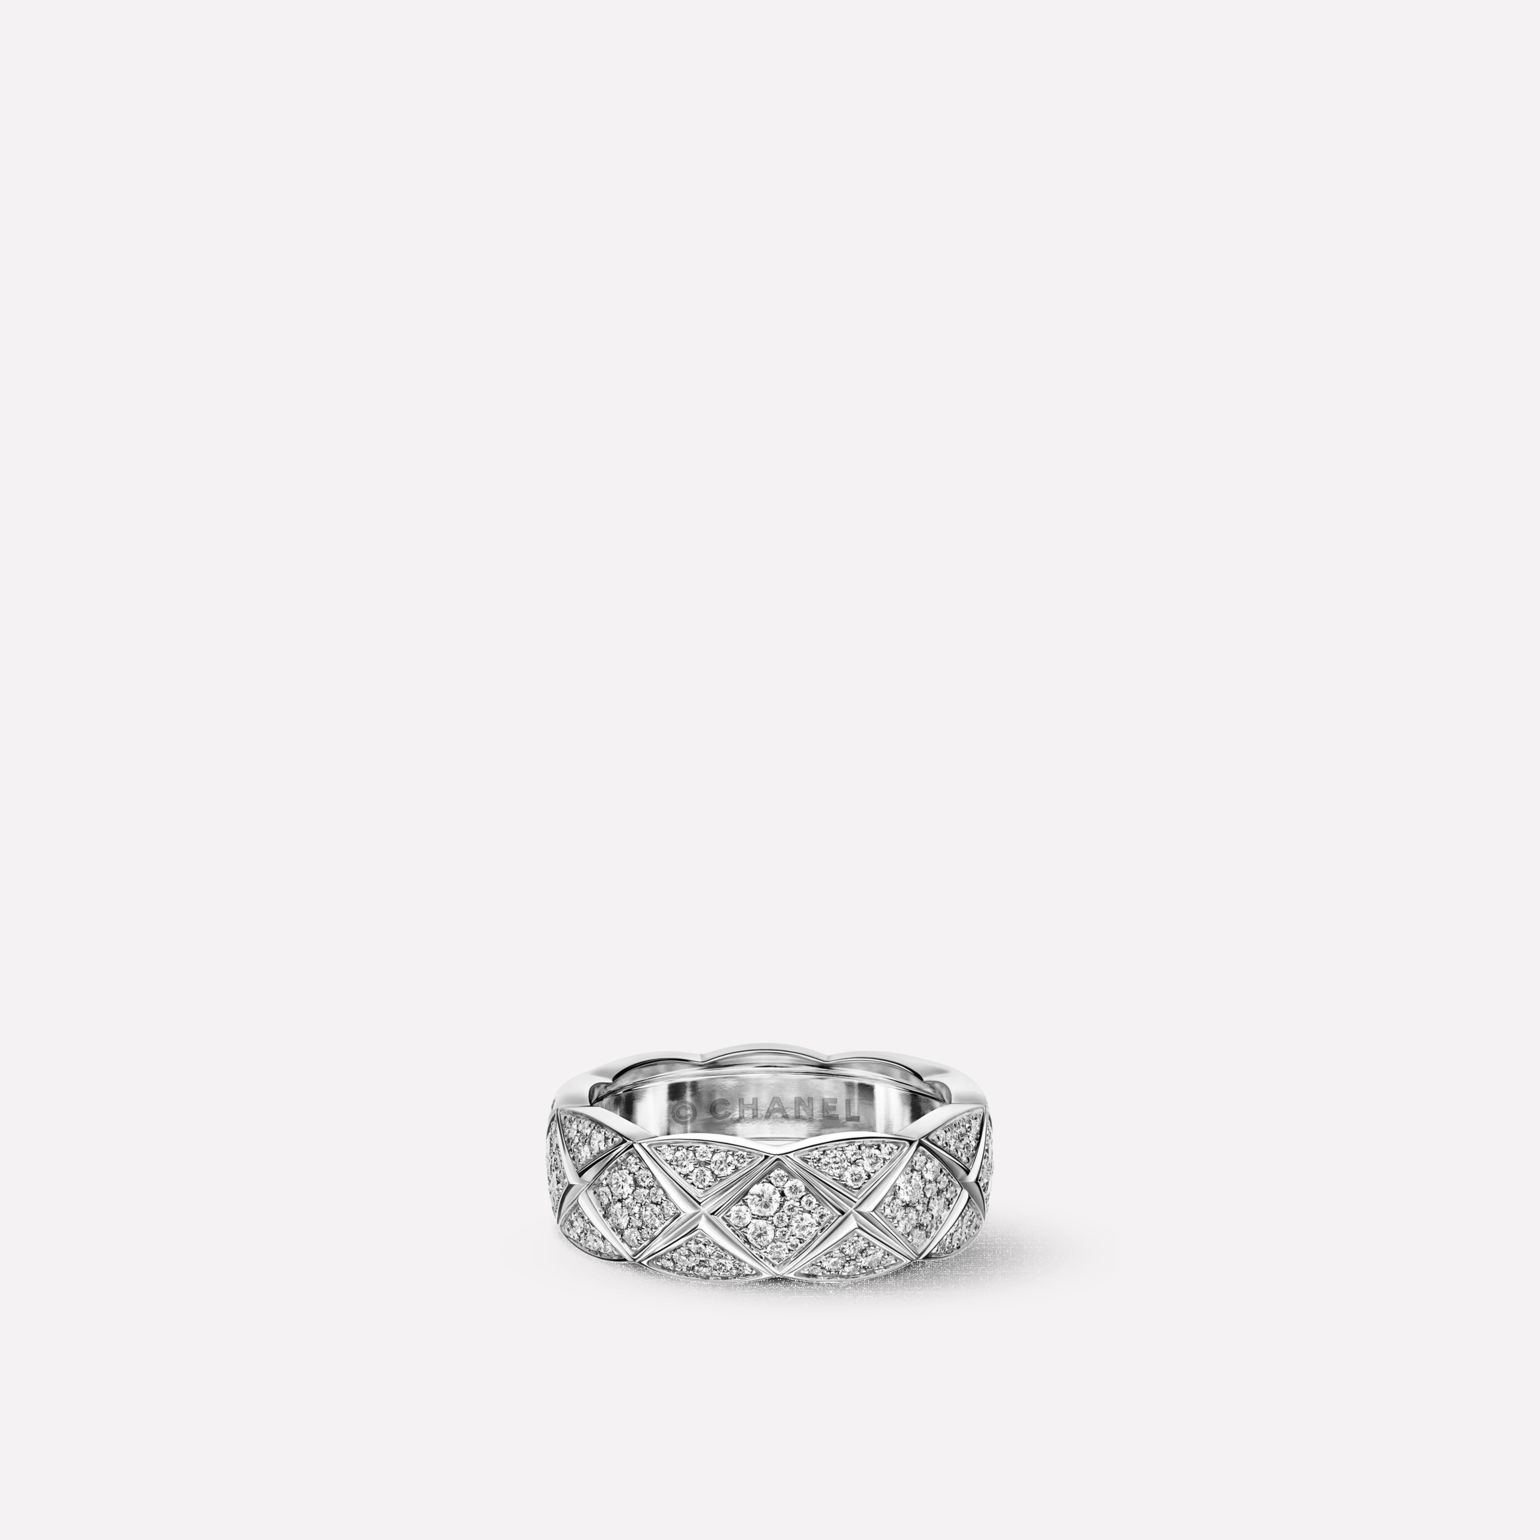 Coco Crush ring Quilted motif ring, small version, in 18K white gold, all diamond pave